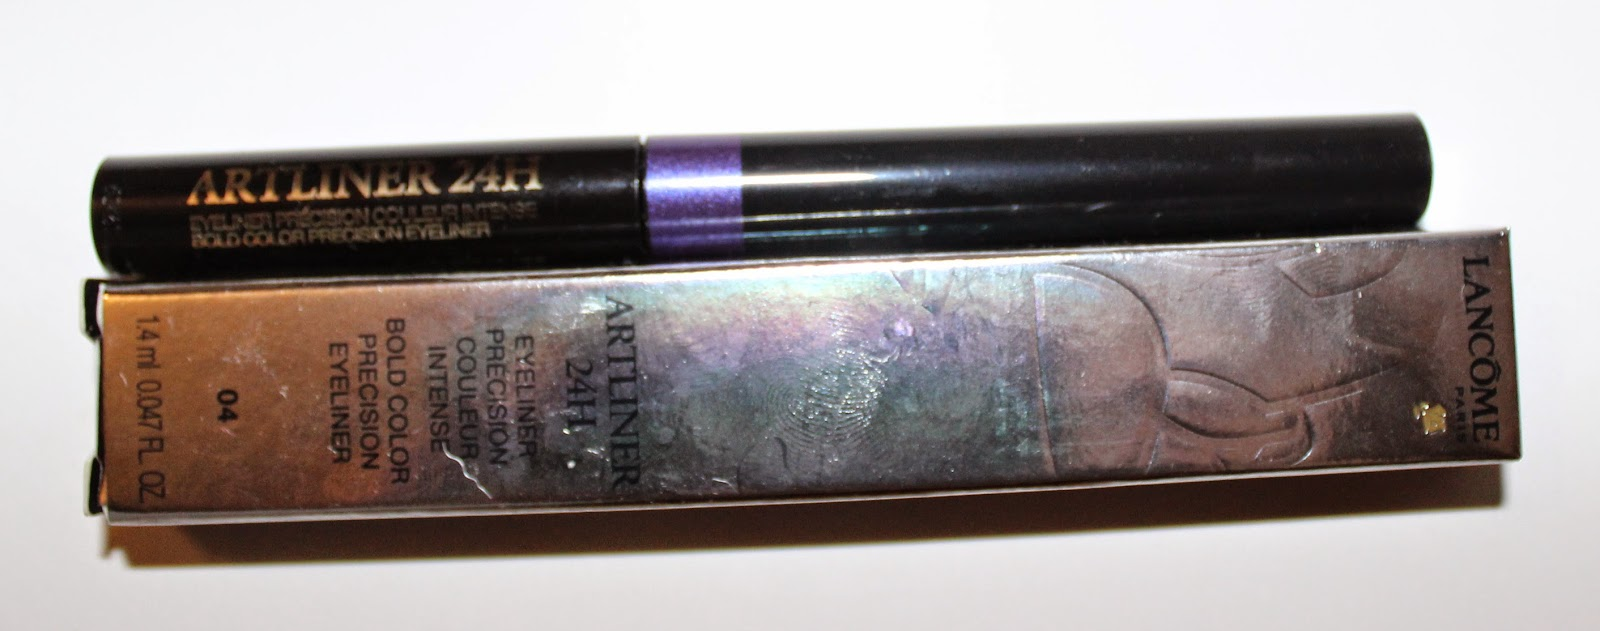 Lancôme Artliner 24H Bold Color Precision Eyeliner in Amethyst